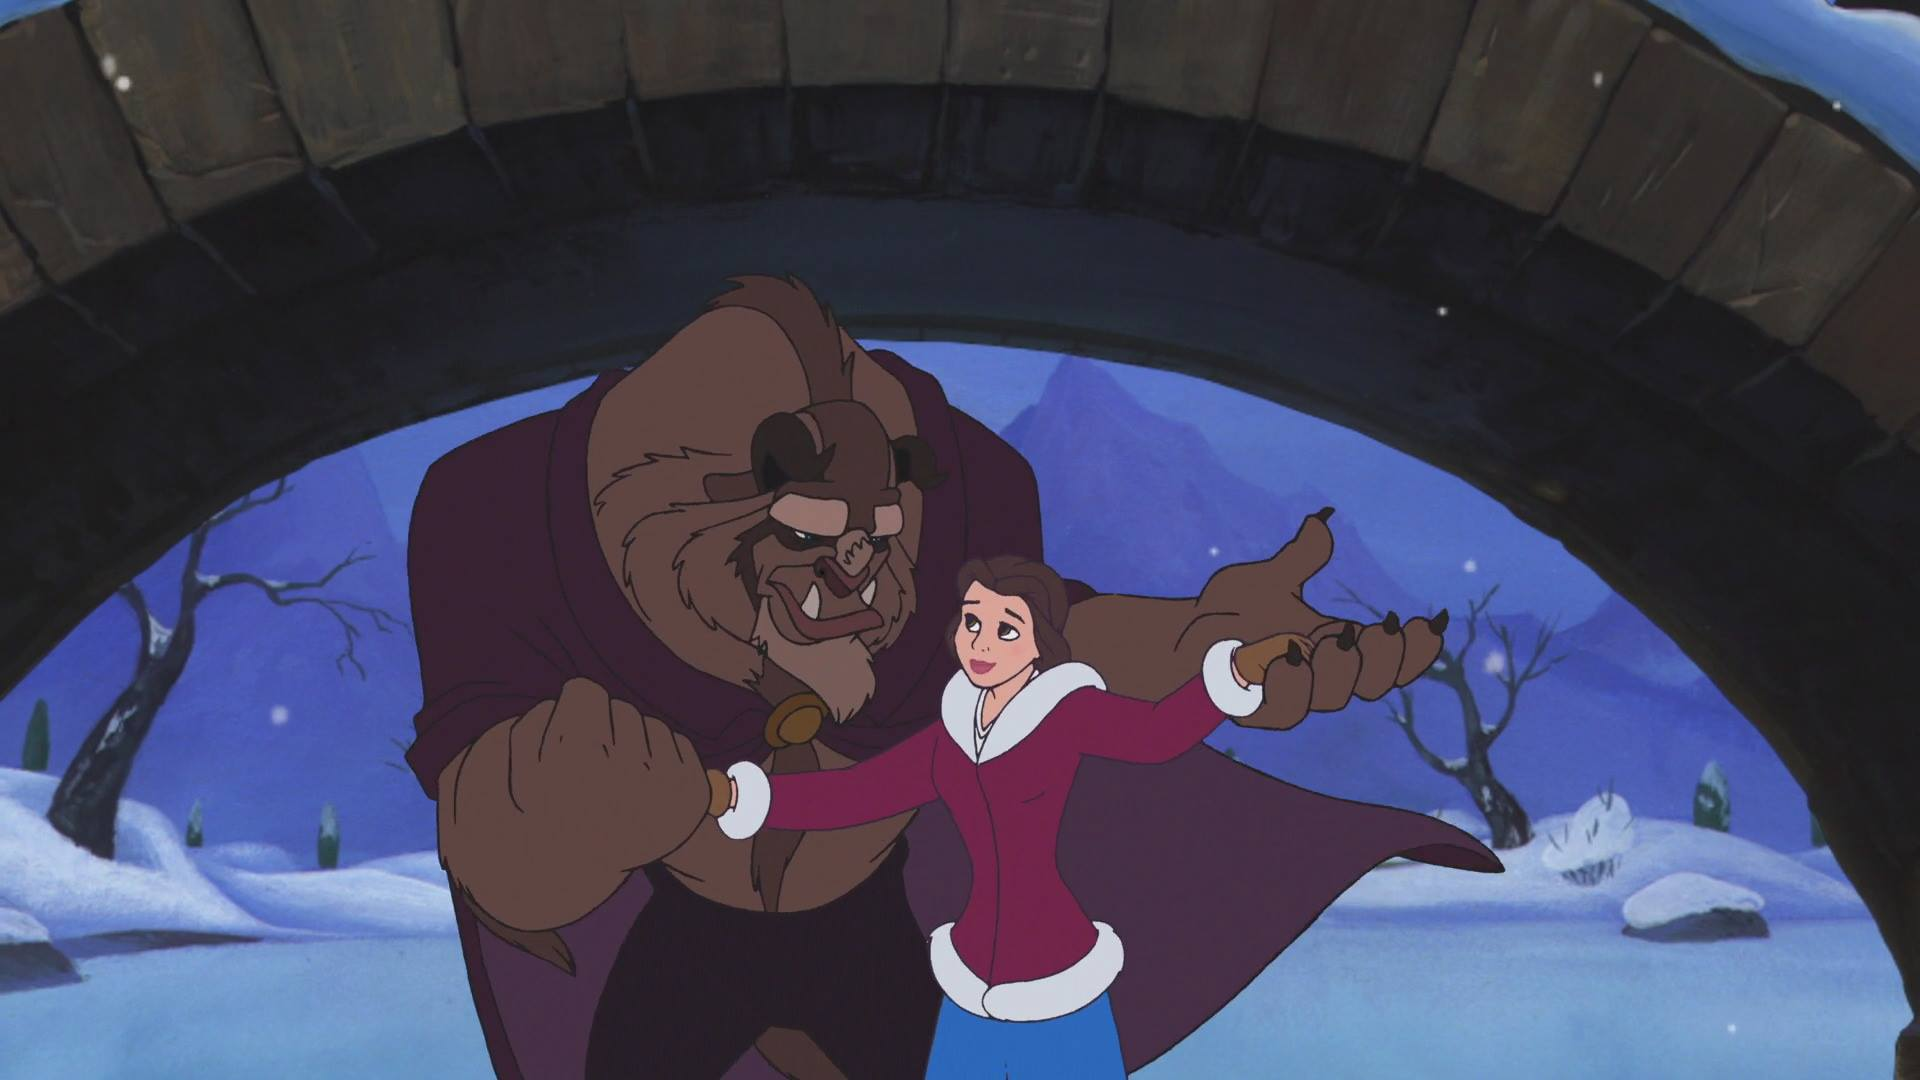 Beauty And The Beast Christmas.Rotoscopers 12 Days Of Christmas Beauty And The Beast